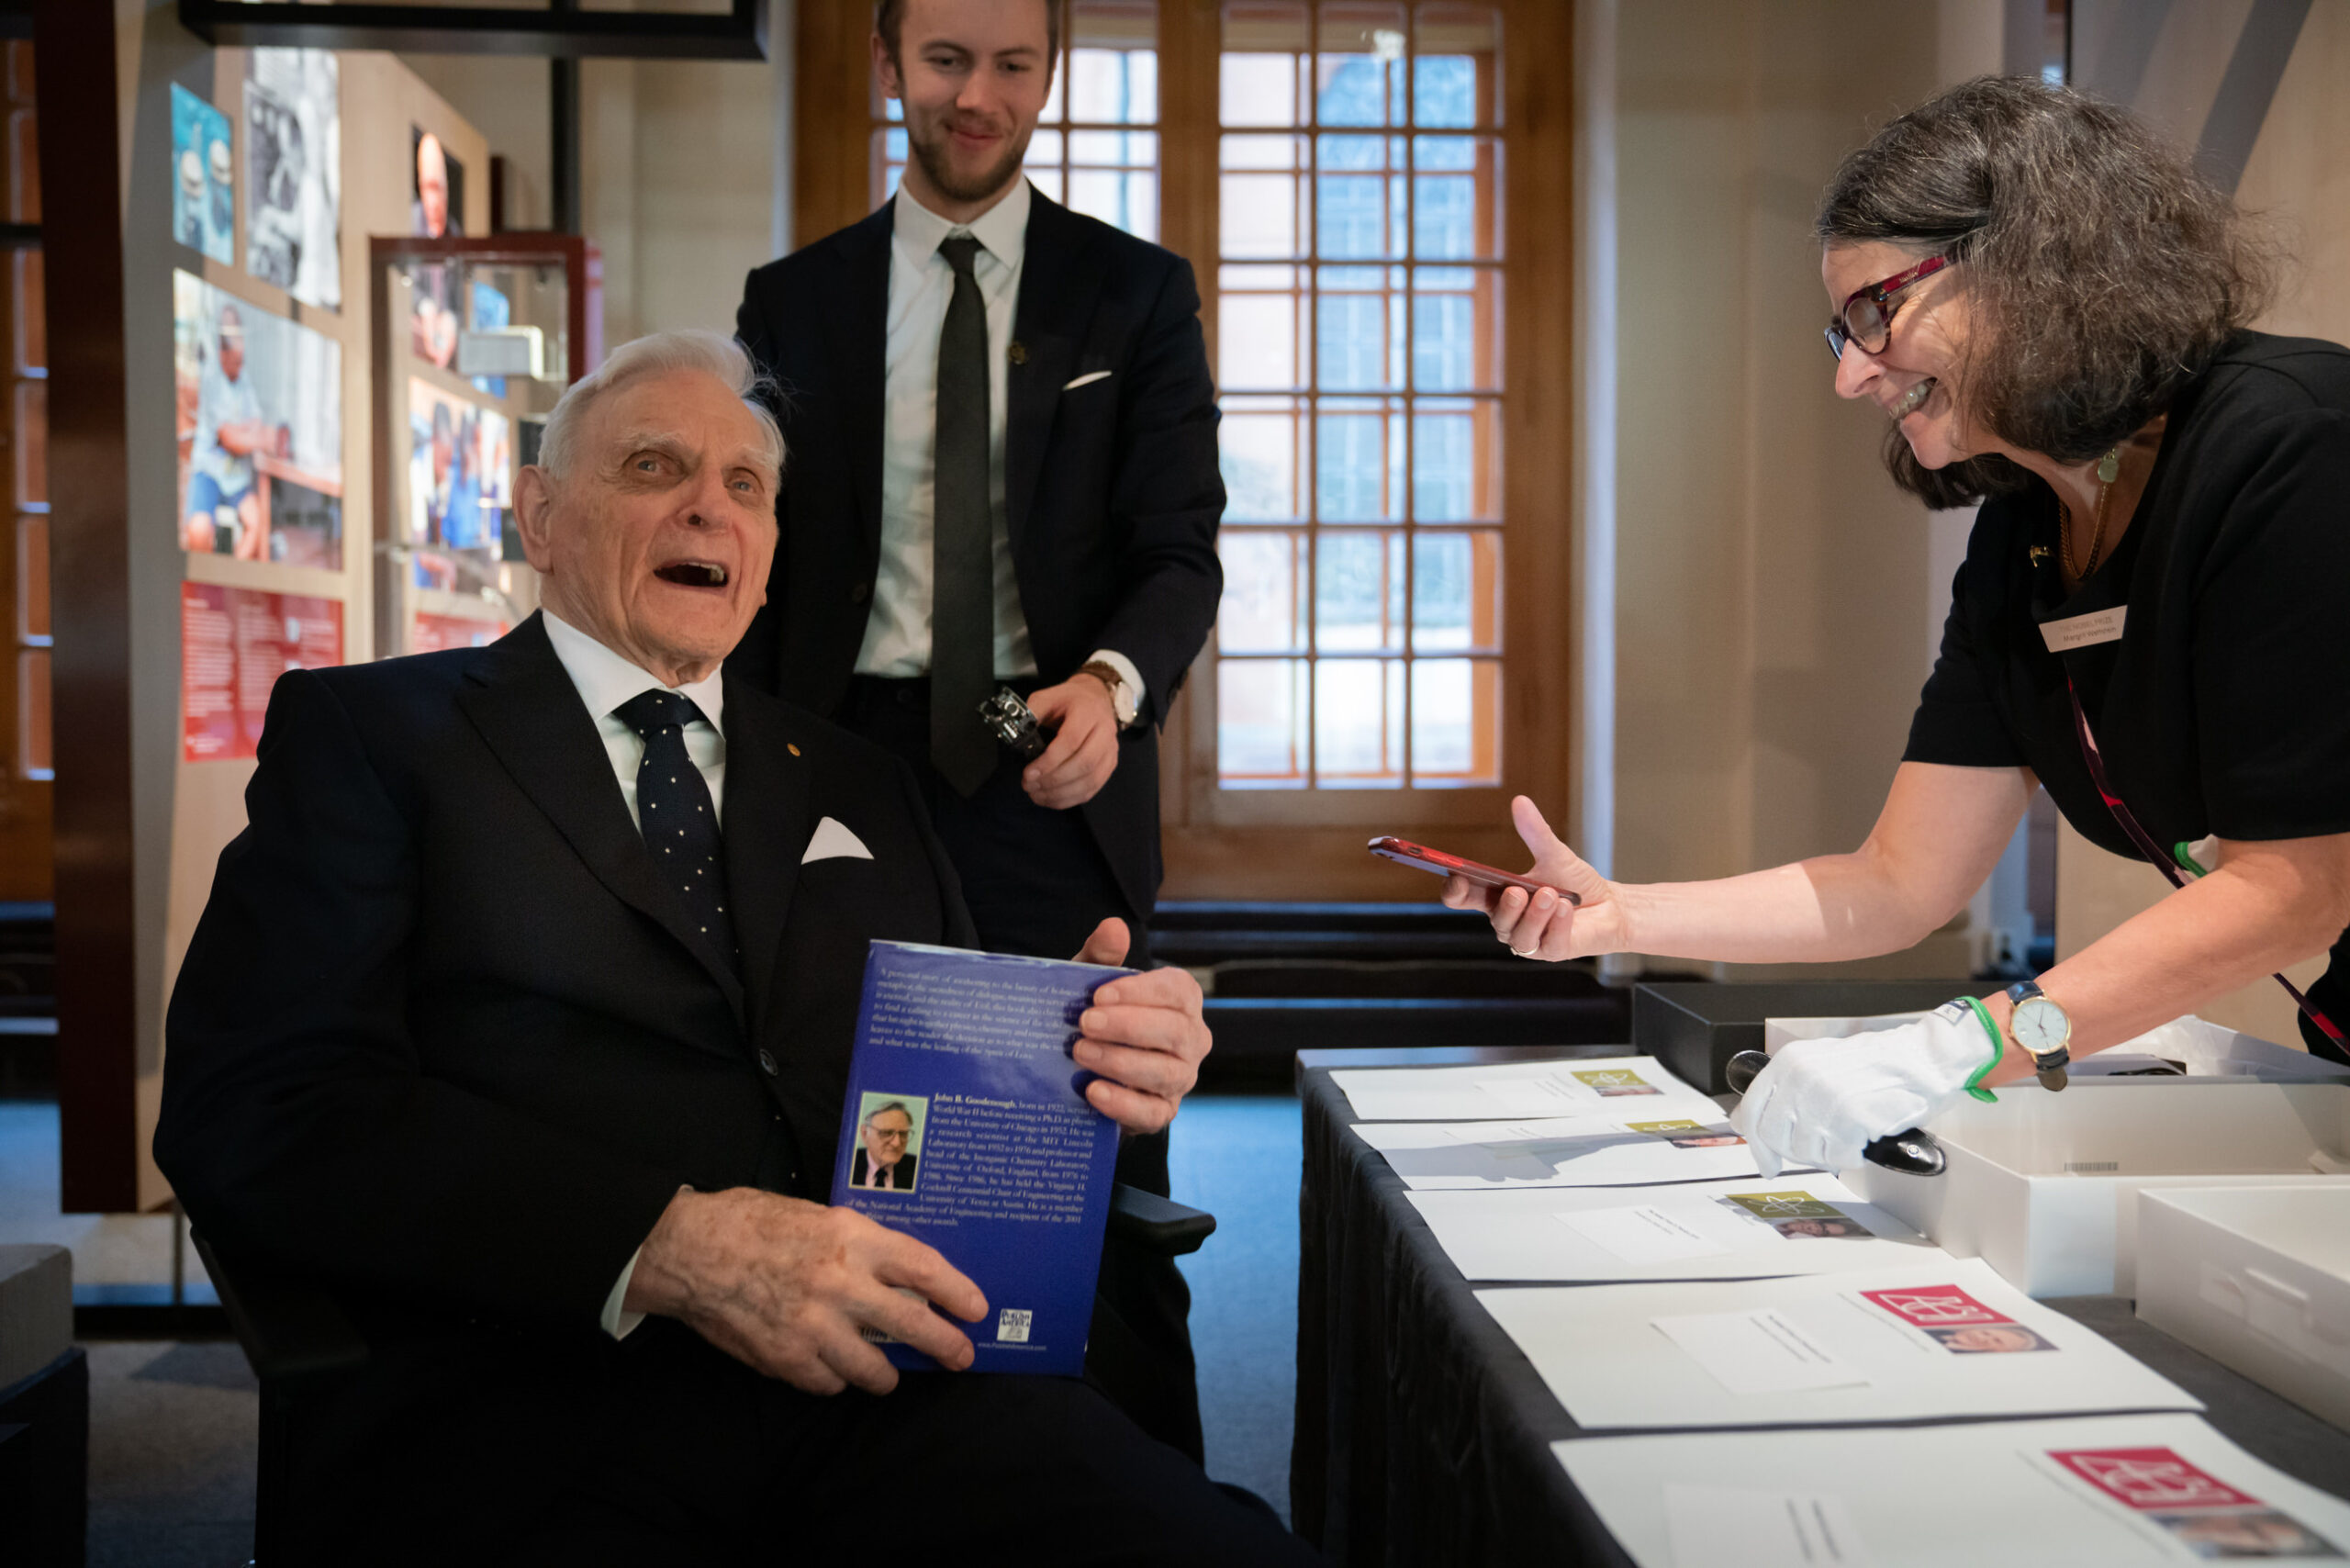 John Goodenough gives a copy of his book to the nobel museum